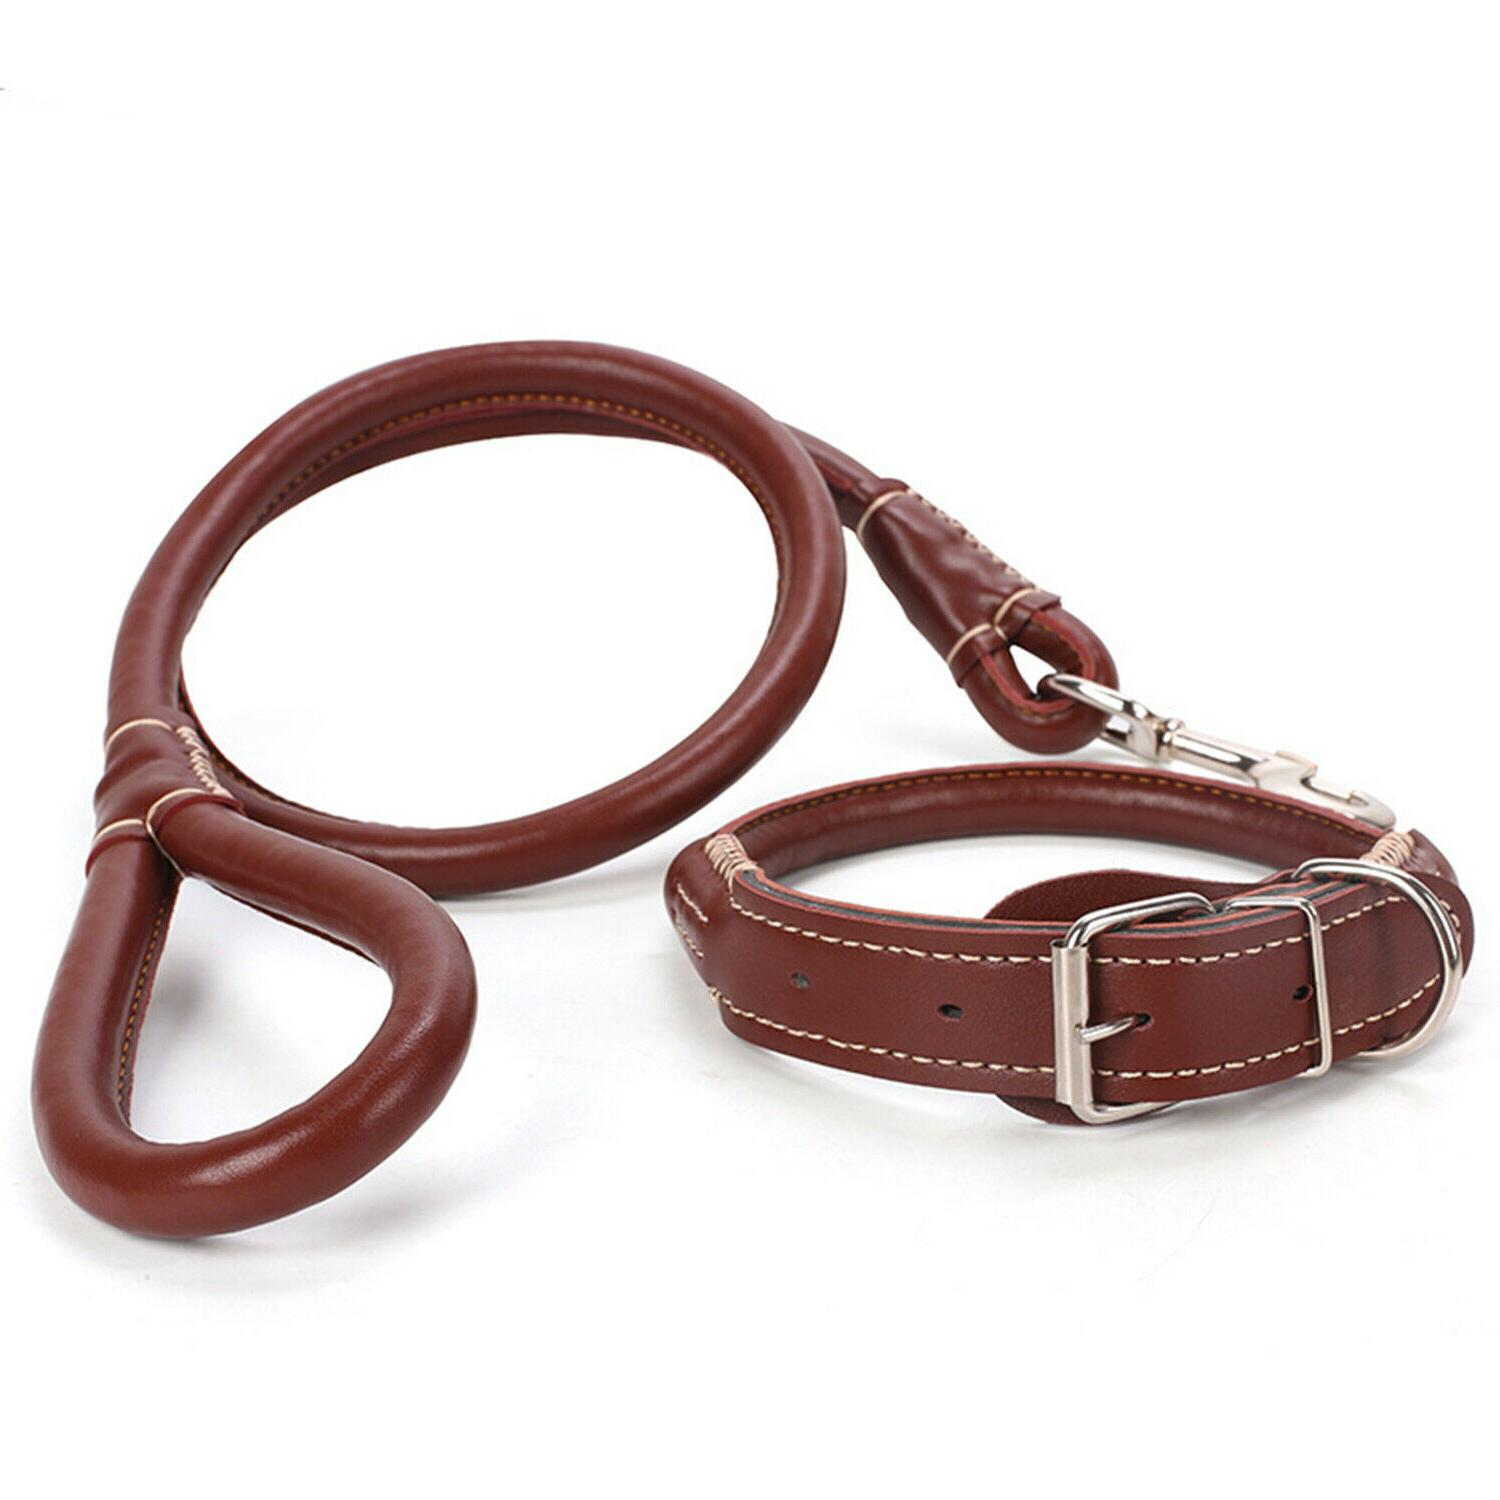 Large leather+Collar with Handle Walkin